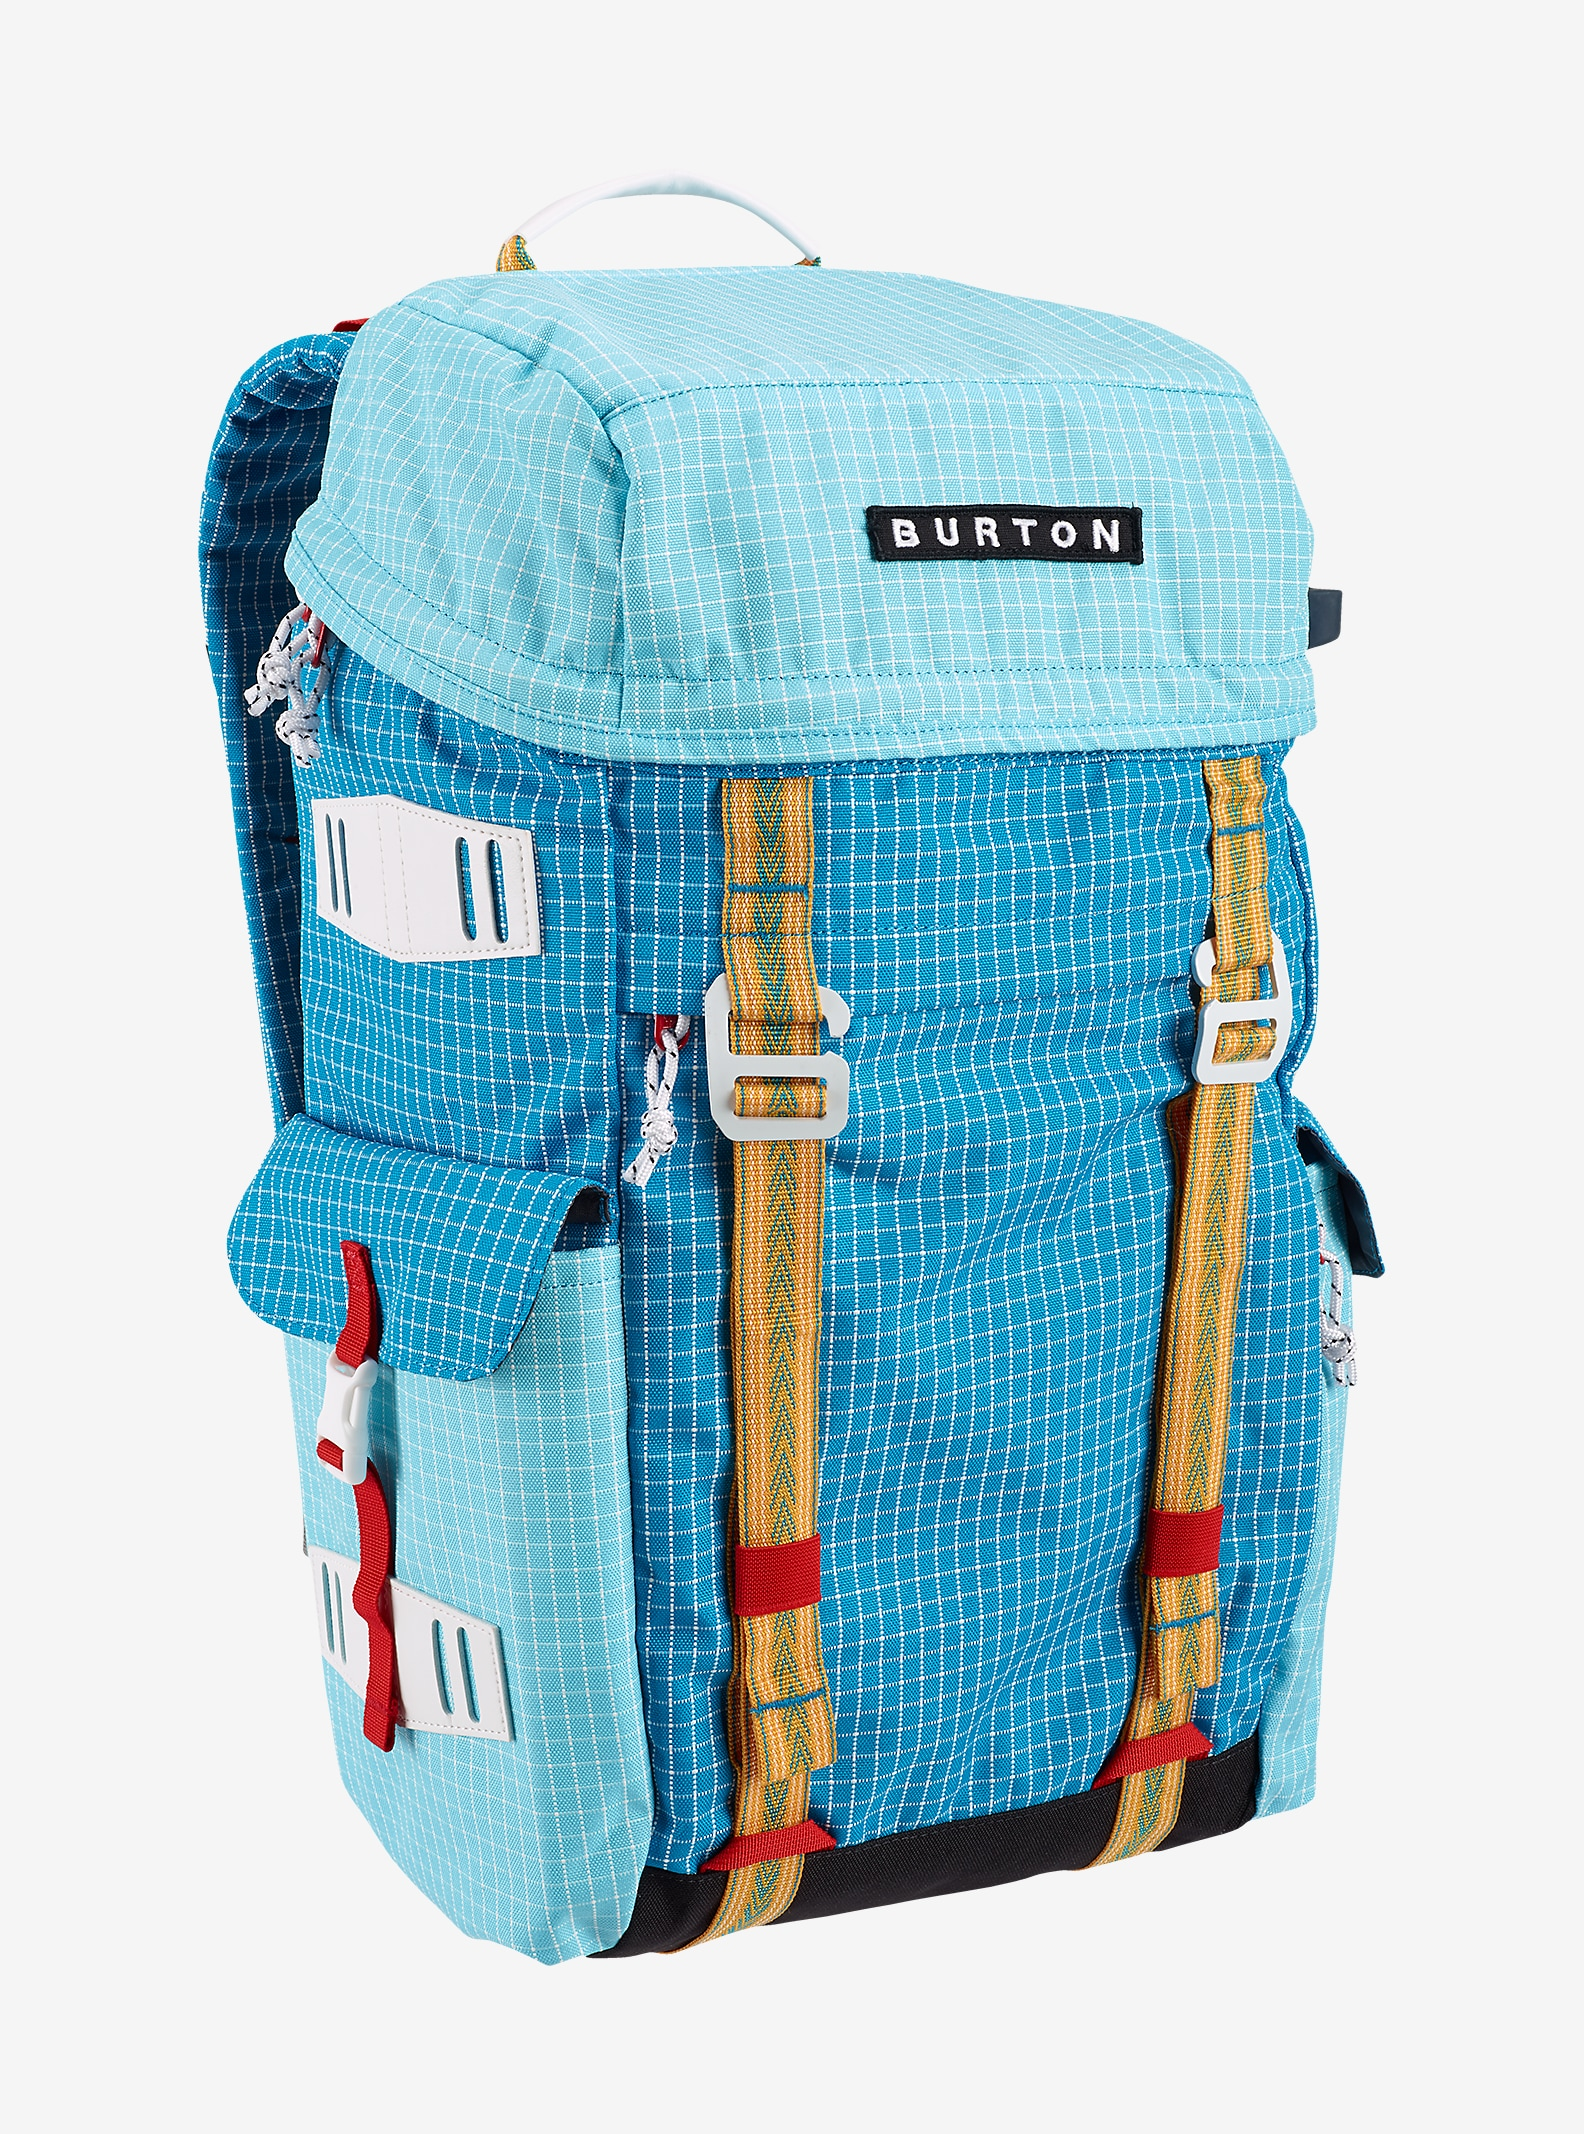 Burton Annex Backpack shown in Methyl Ripstop [bluesign® Approved Fabric]